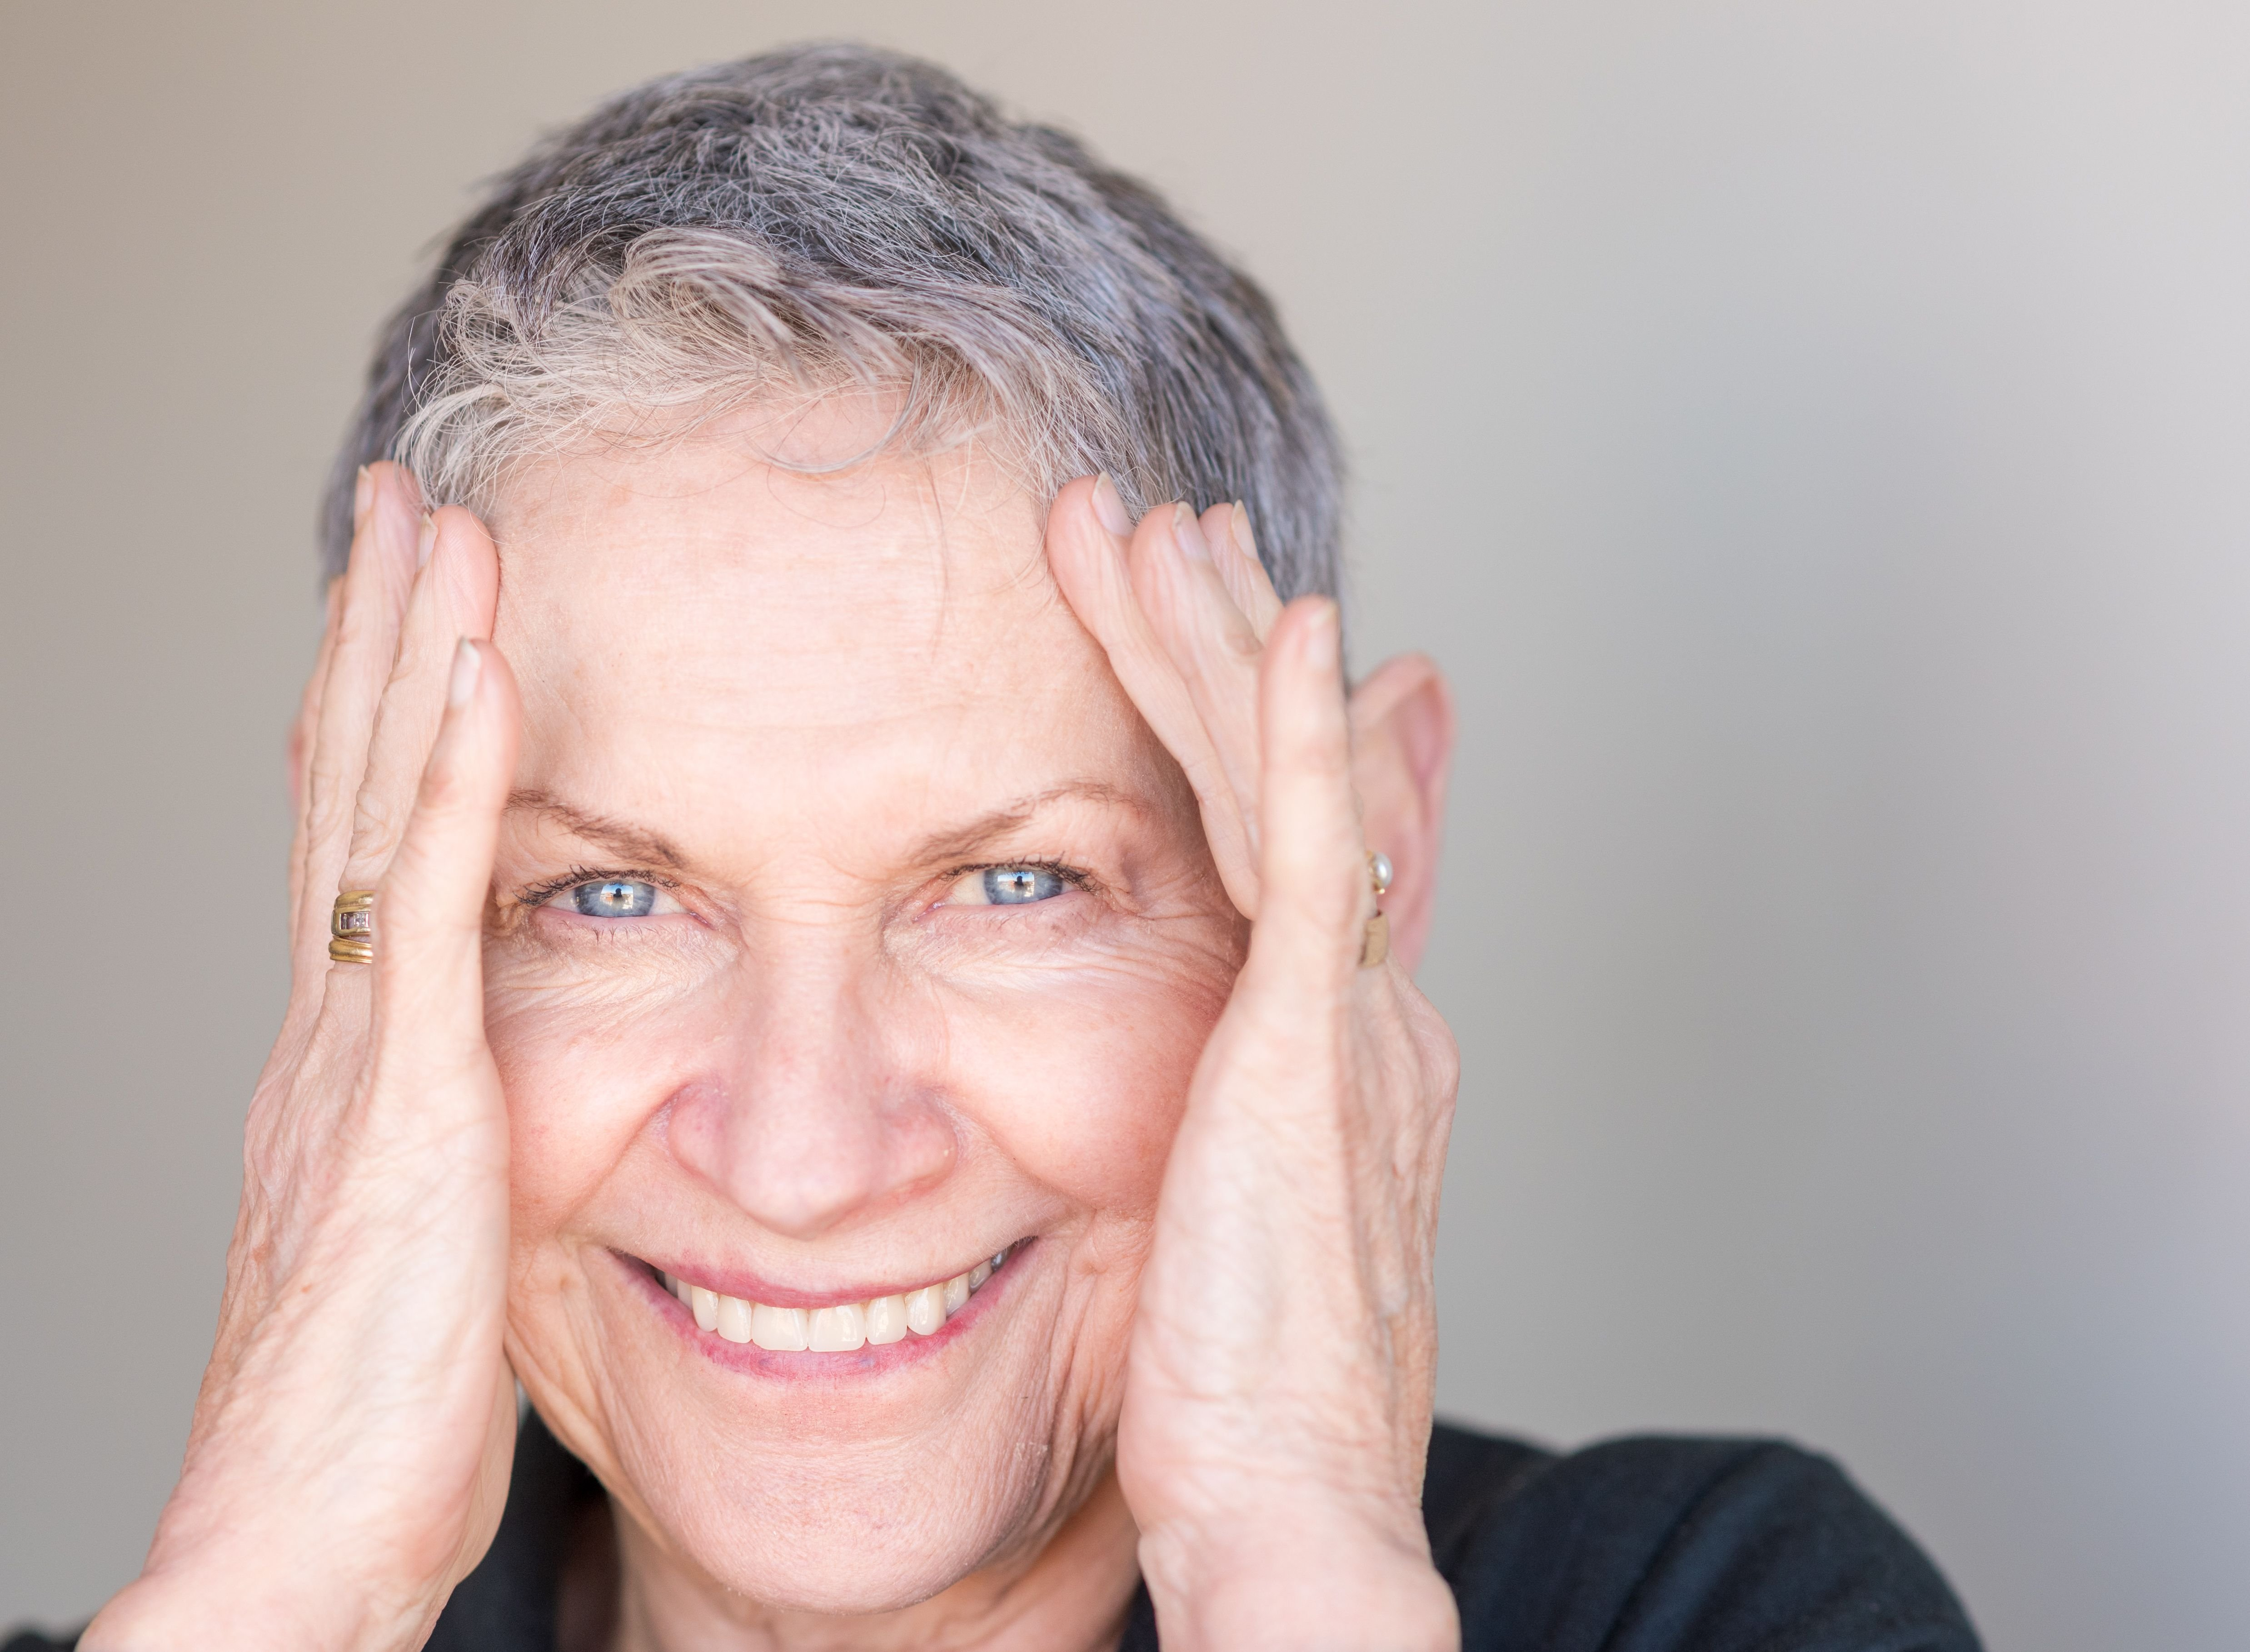 Close up portrait of beautiful older woman with short grey hair smiling with hands around face. | Source: Shutterstock